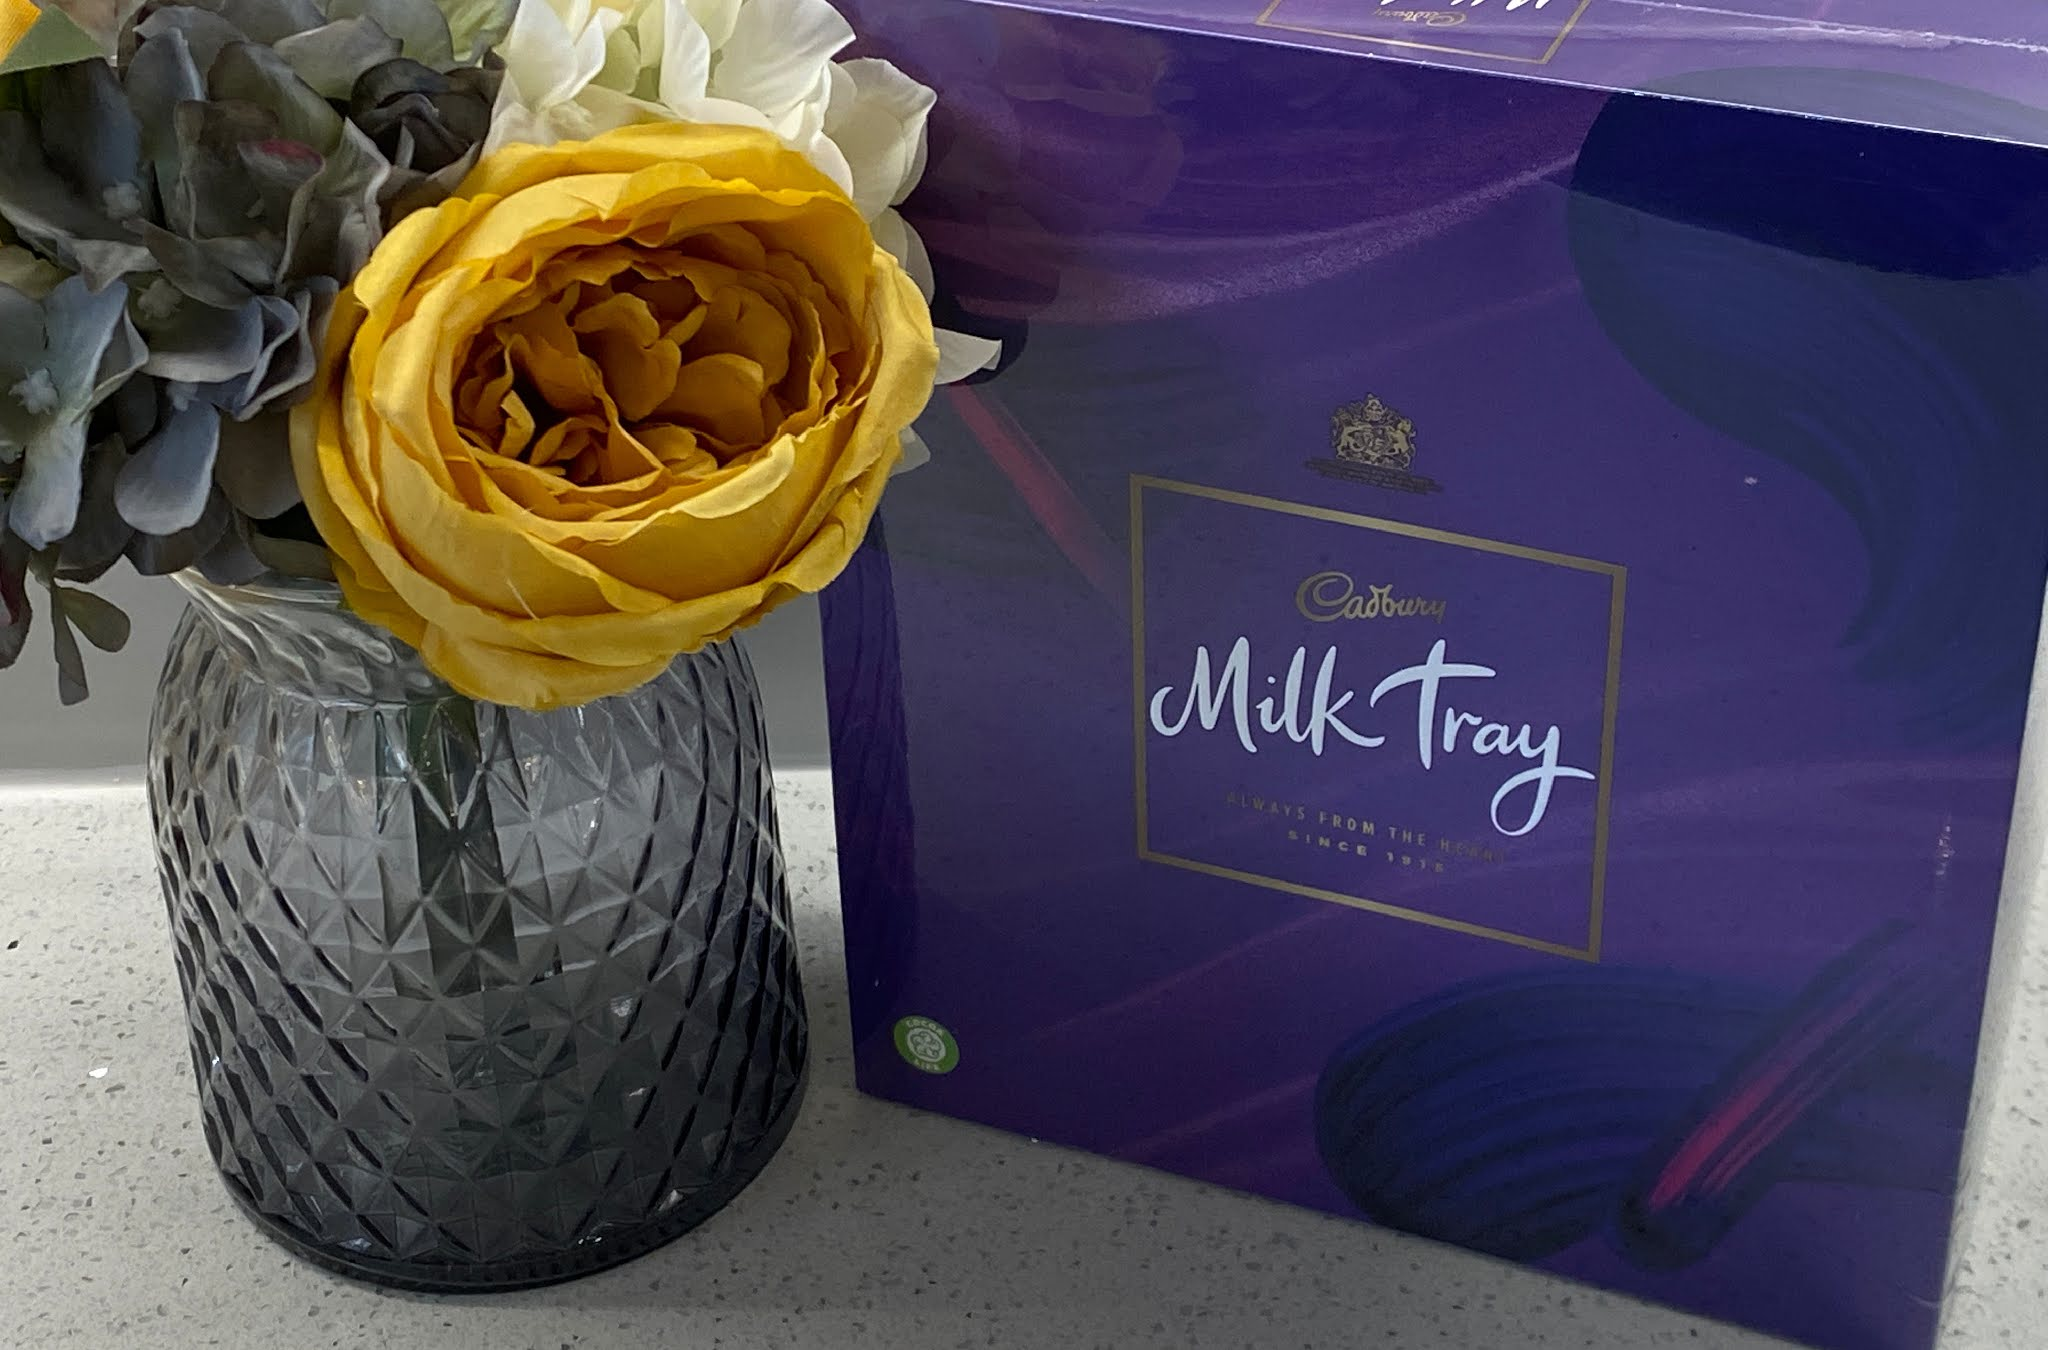 Milk Tray Chocolates